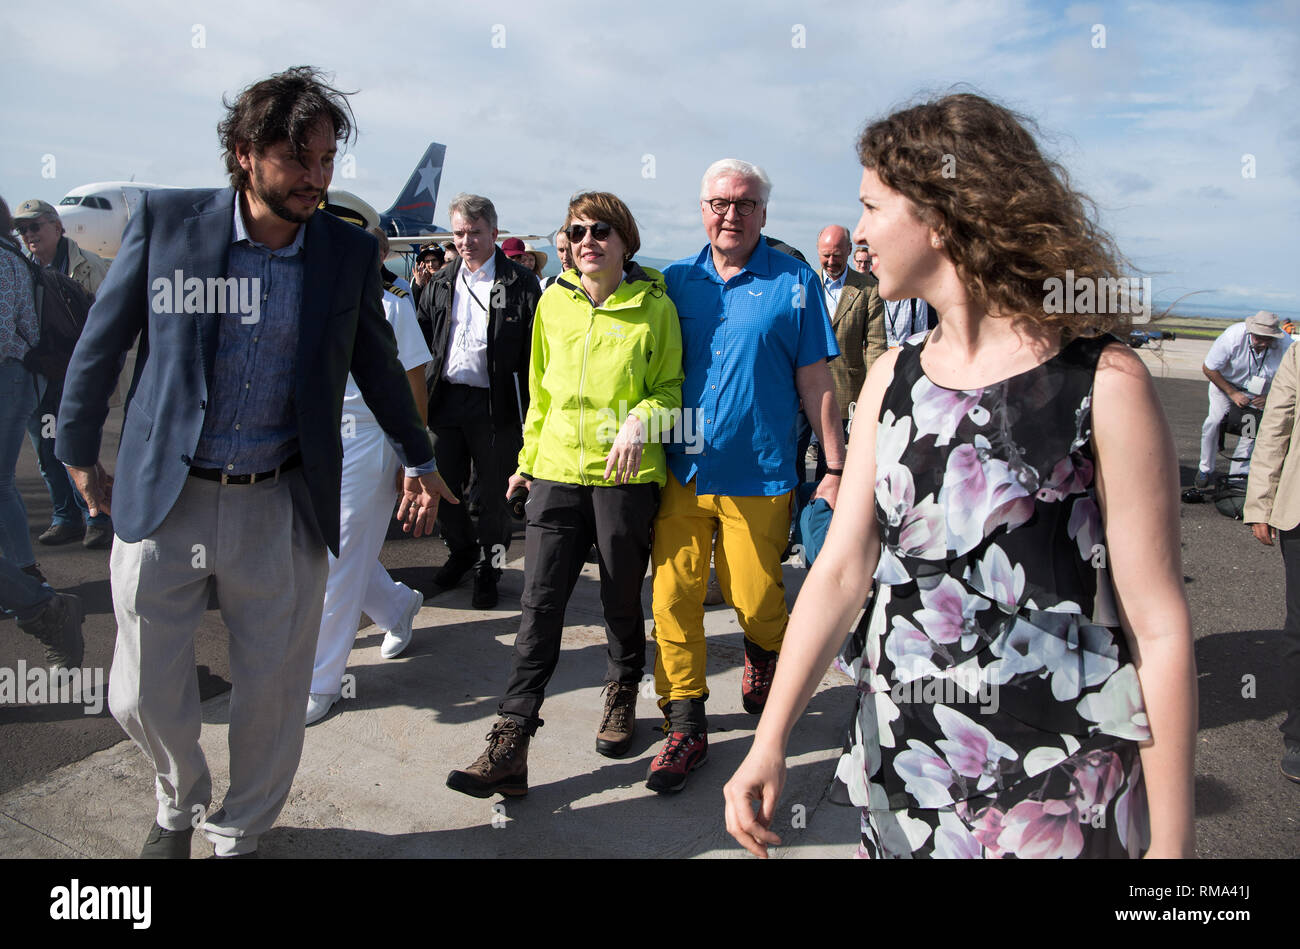 14 February 2019, Ecuador, Galapagos-Inseln: President Frank-Walter Steinmeier and his wife Elke Büdenbender arrive at Baltra Airport. Federal President Steinmeier and his wife are visiting Colombia and Ecuador on the occasion of Alexander von Humboldt's 250th birthday as part of a five-day trip to Latin America. Photo: Bernd von Jutrczenka/dpa - Stock Image